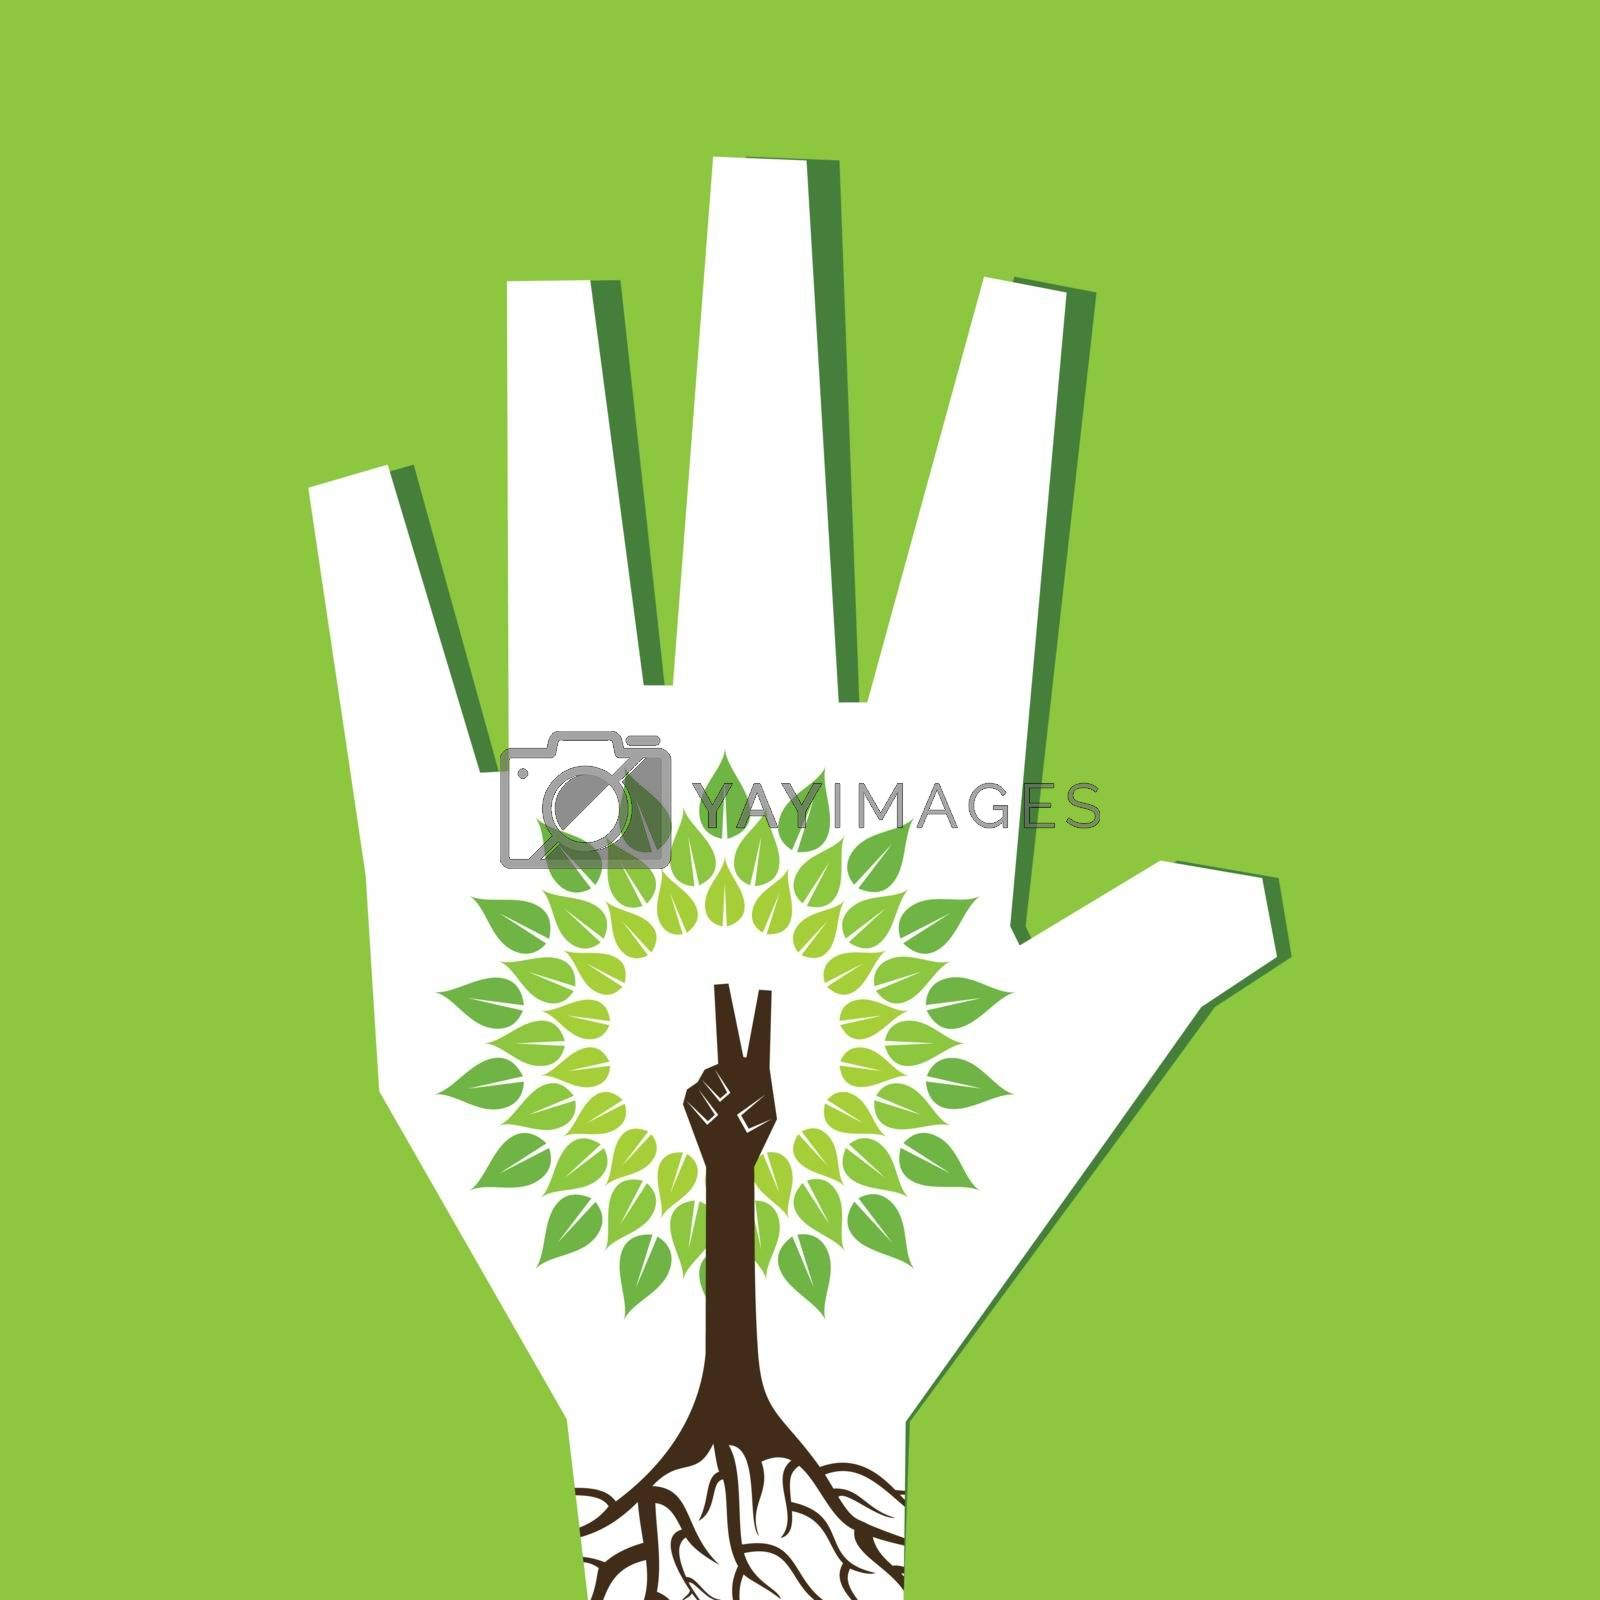 Victory hand make tree inside the tree- vector illustration